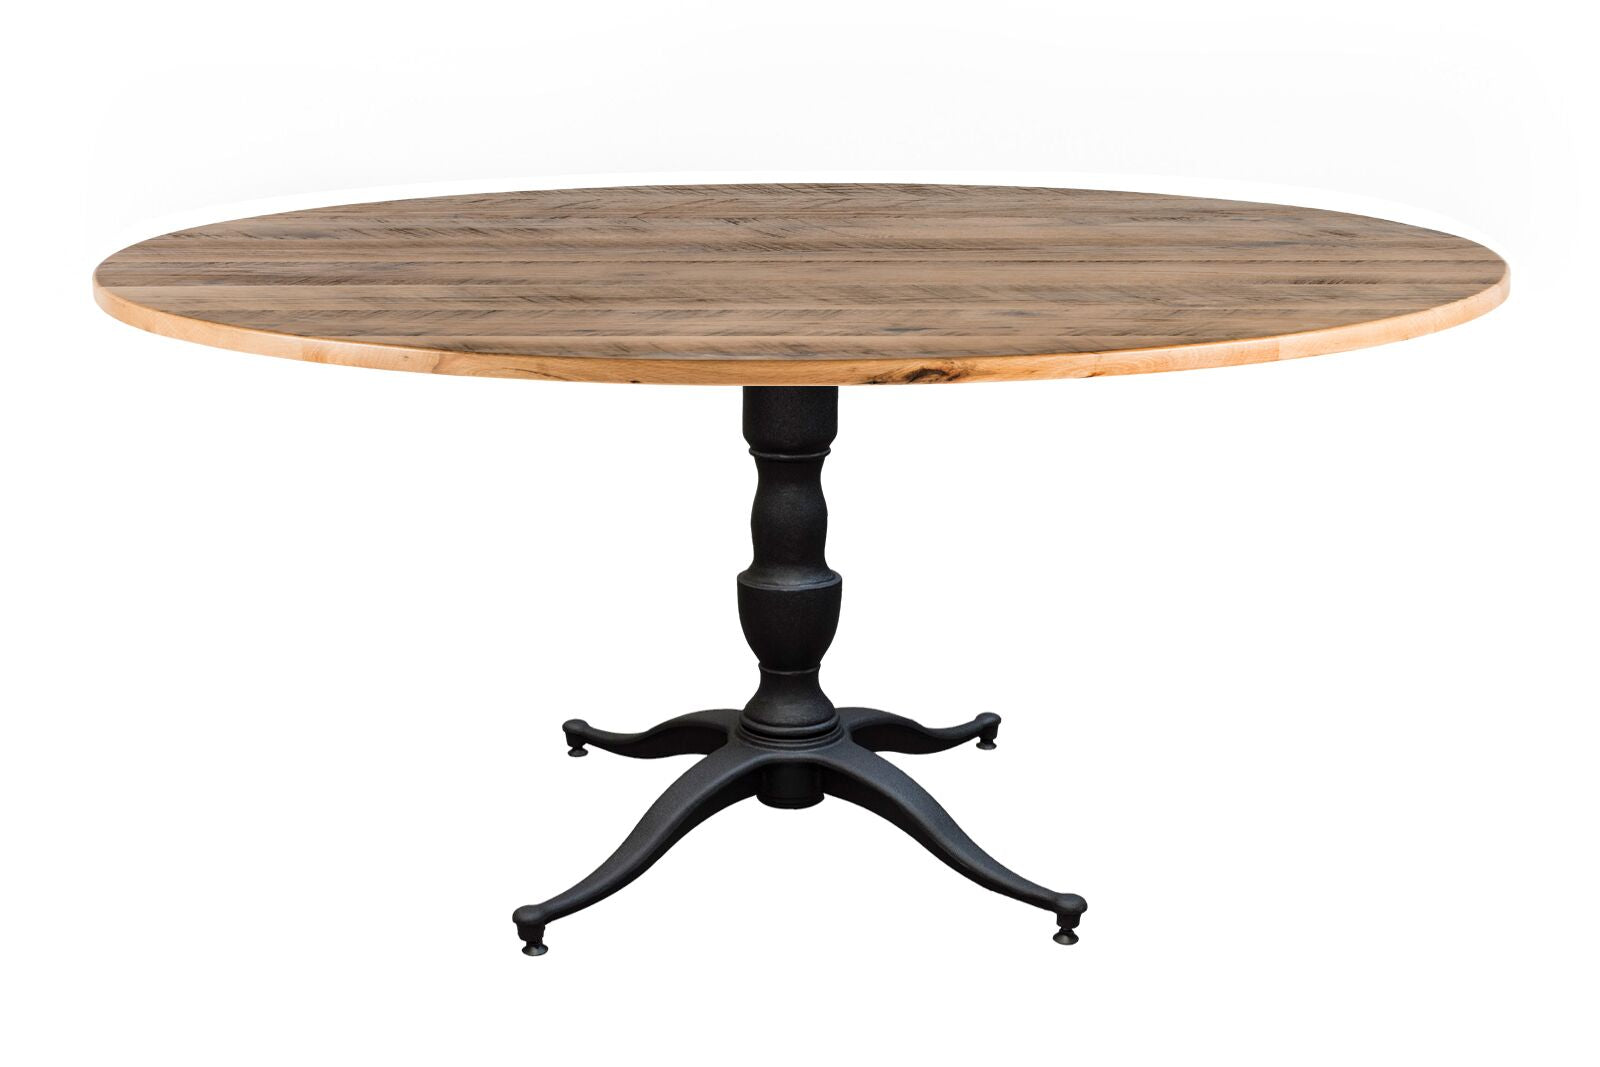 "Round Wood Tables | Francesca Table | Natural Ash | Black | Diameter 42 |  Height 30 | 1.5"" Standard"